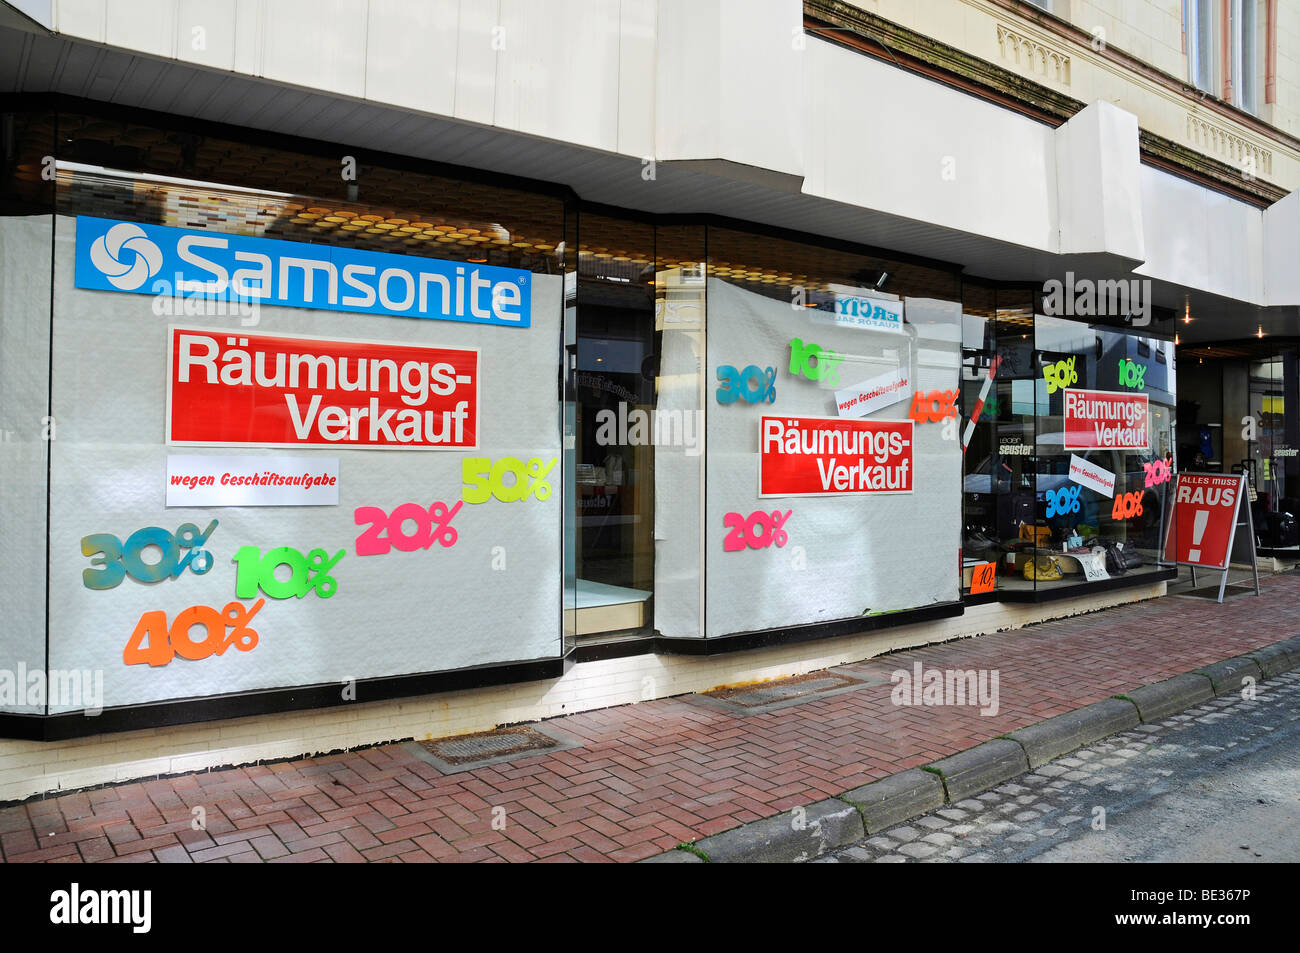 Vente en liquidation, faillite, crise économique, Luedenscheid, Maerkischer district, Sauerland, Rhénanie Photo Stock